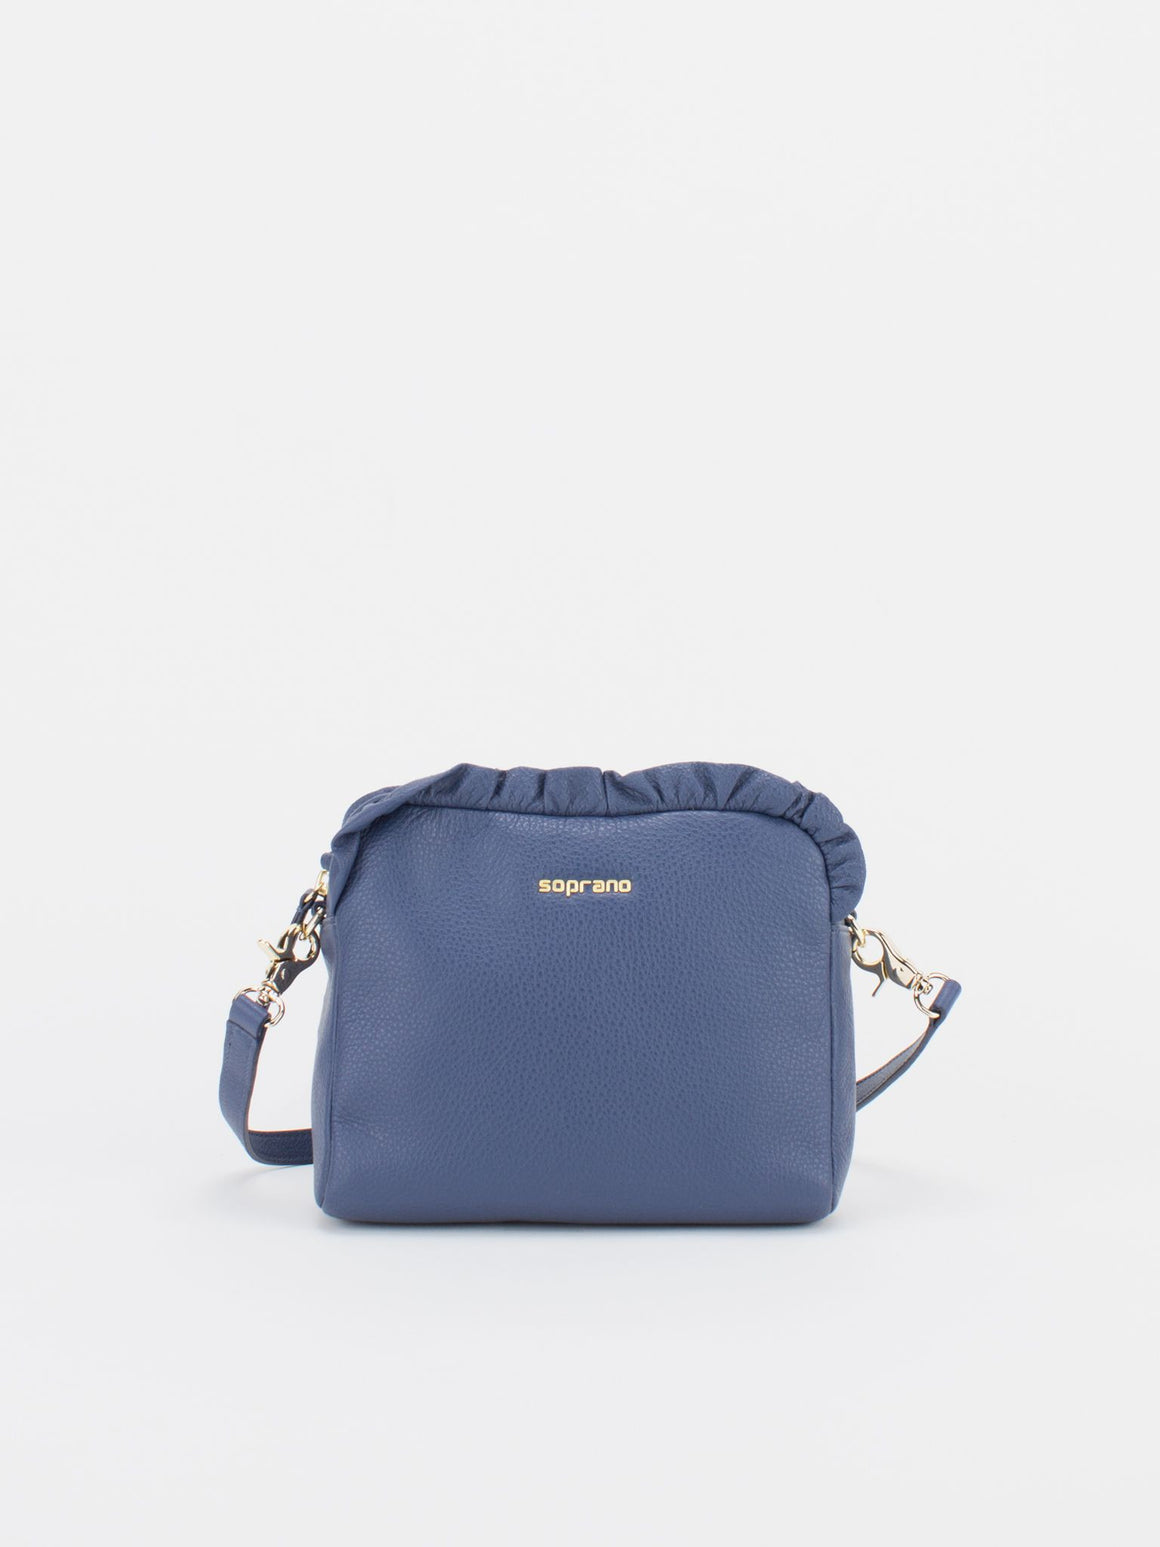 SCARLET Leather Shoulder Bag with Ruched Detail - Navy